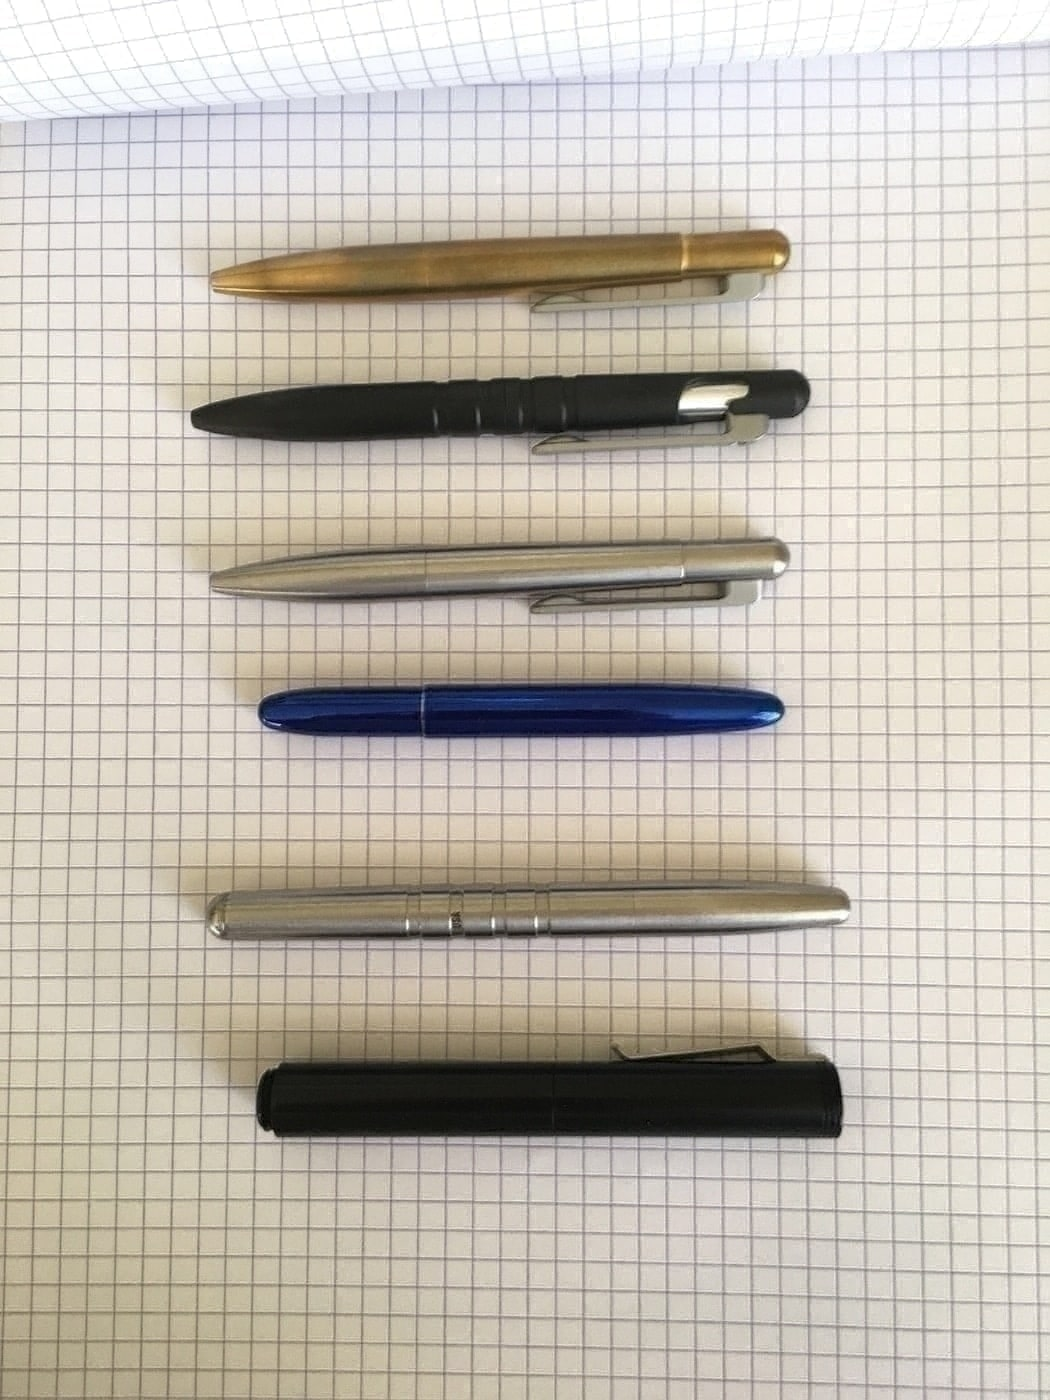 Top to Bottom: Brass Field Pen Compact, Field Pen, Stainless Steel Field Pen Compact, Fisher Bullet, Machine Era Co Pen, Schon DSGN Pen